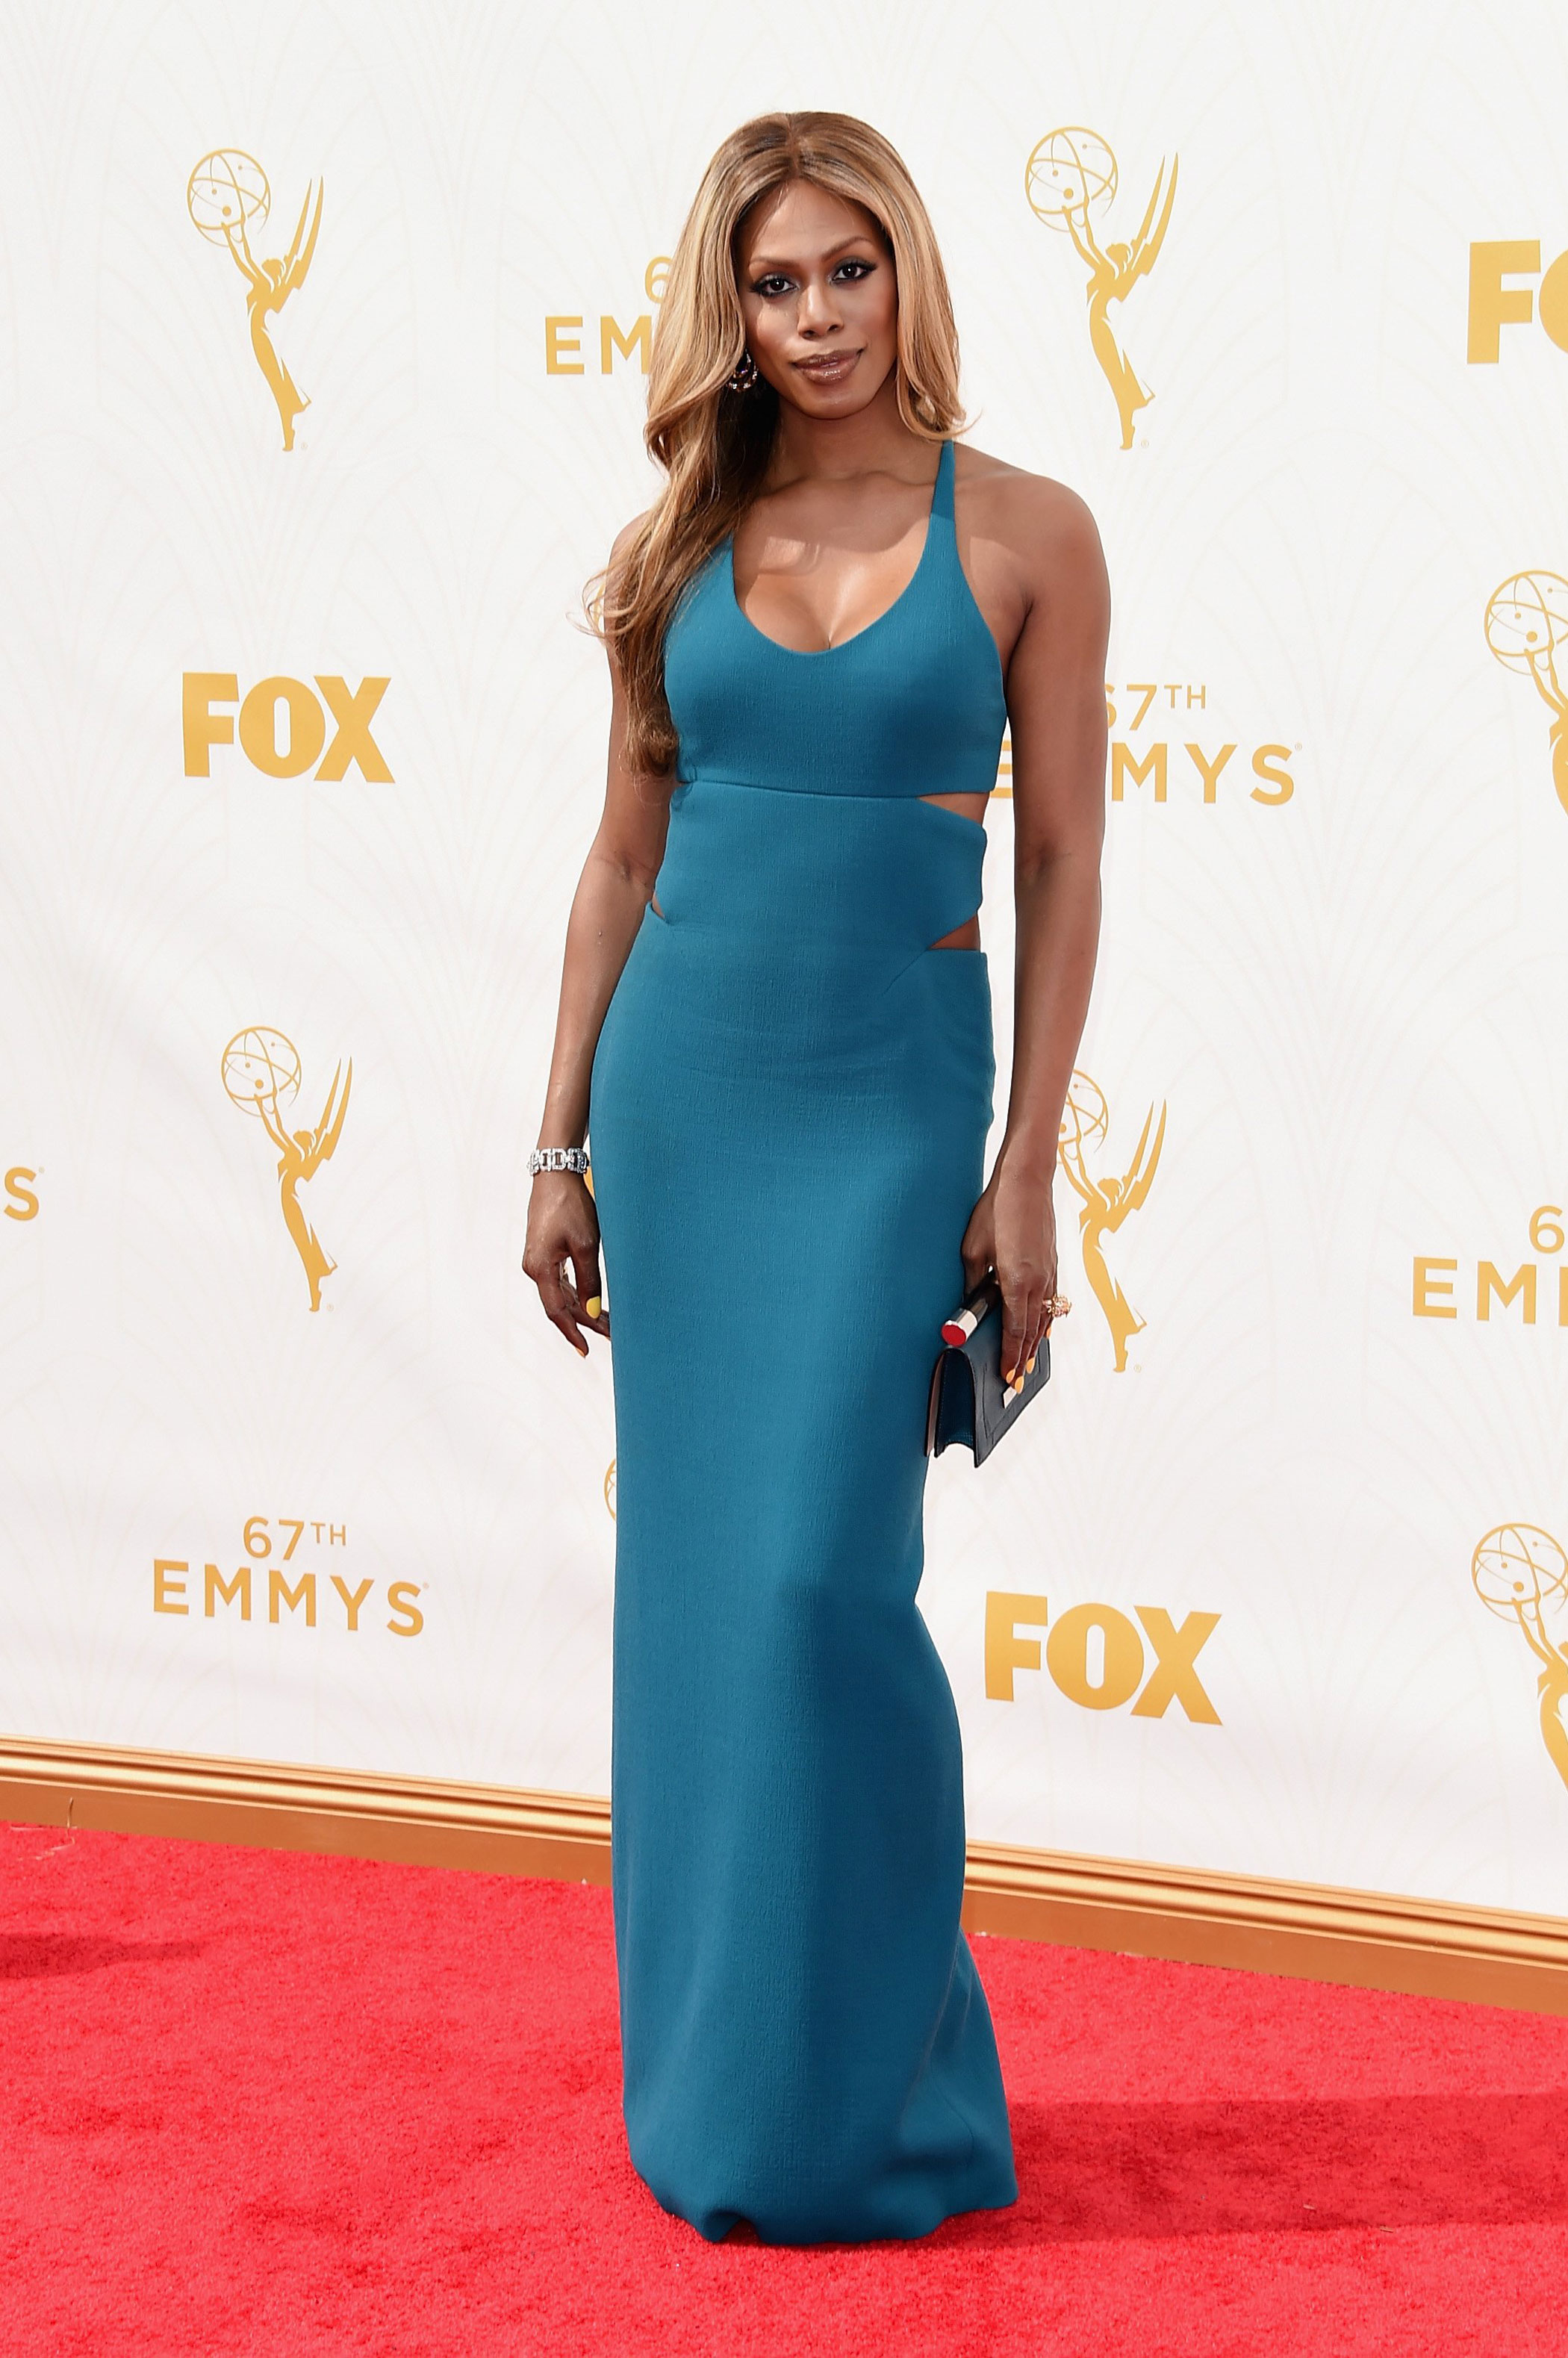 Laverne Cox at the 67th Emmy Award on Sept. 20, 2015 in Los Angeles.